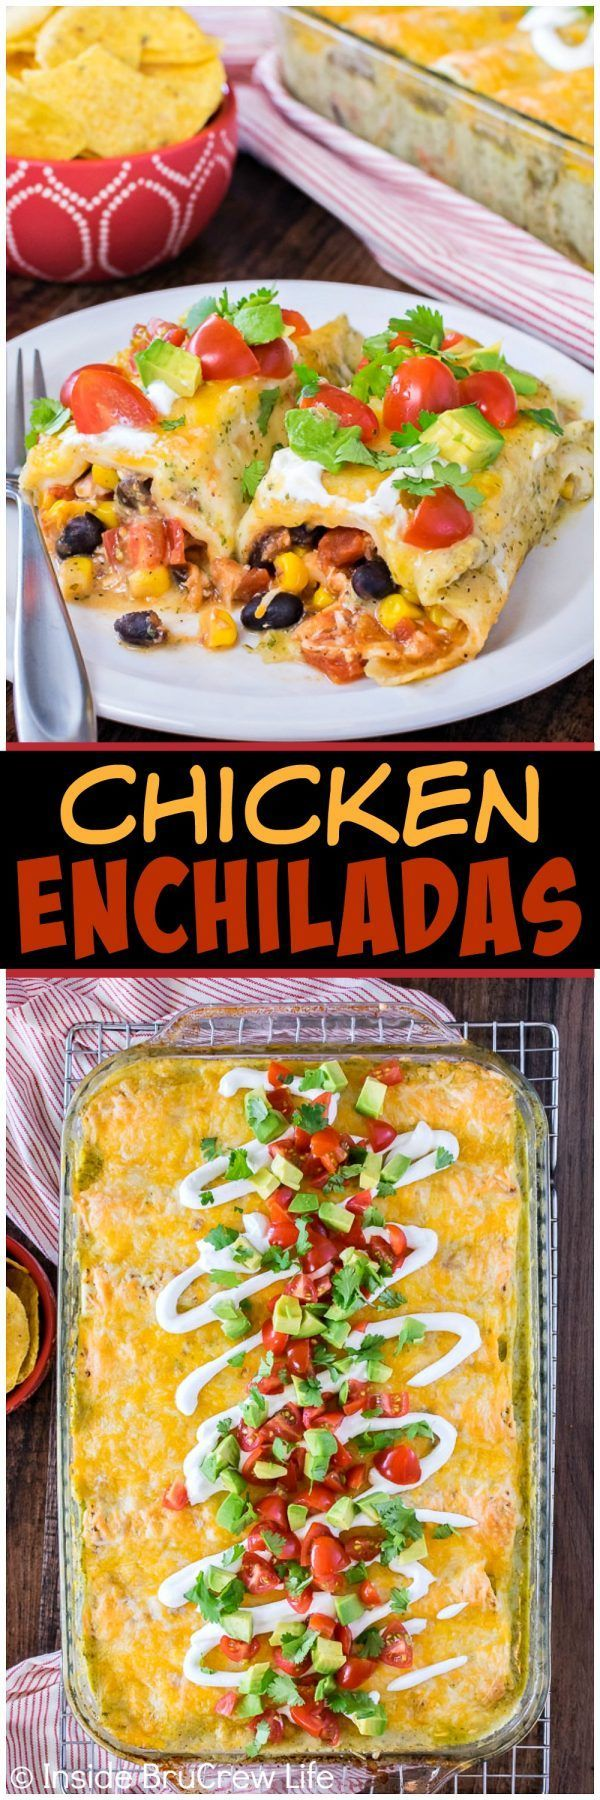 Chicken Enchiladas - these easy tortillas are loaded with beans, veggies, and meat. Great recipe for busy nights!